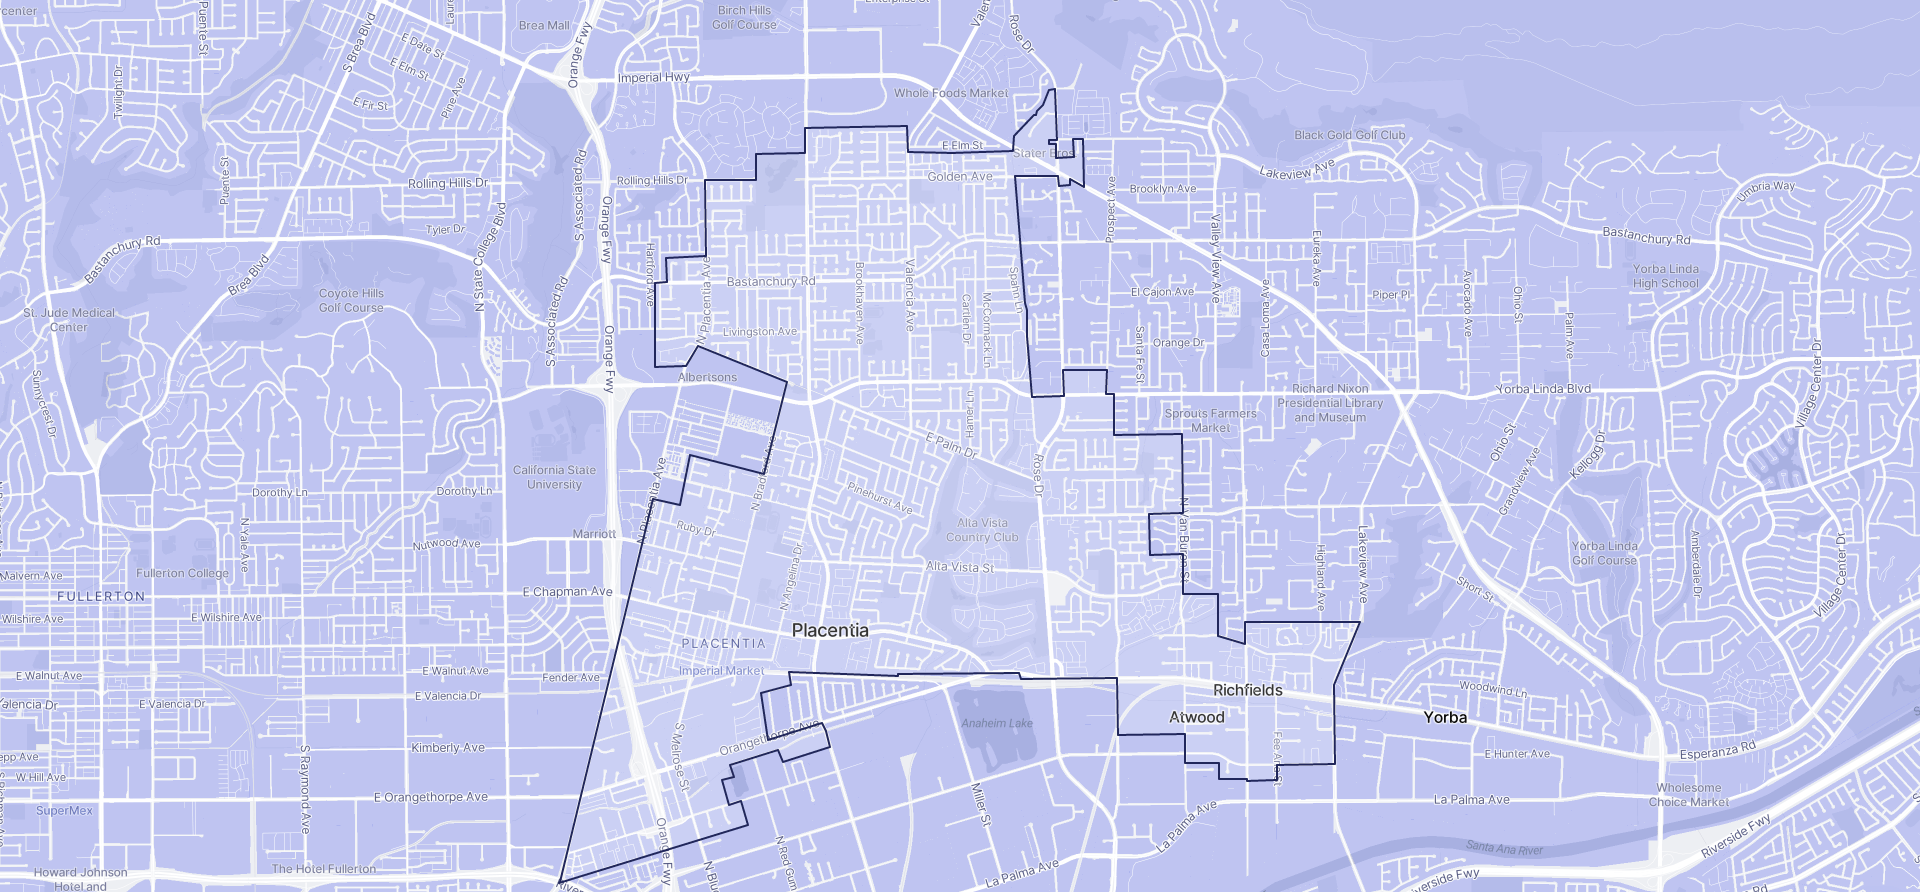 Image of Placentia boundaries on a map.